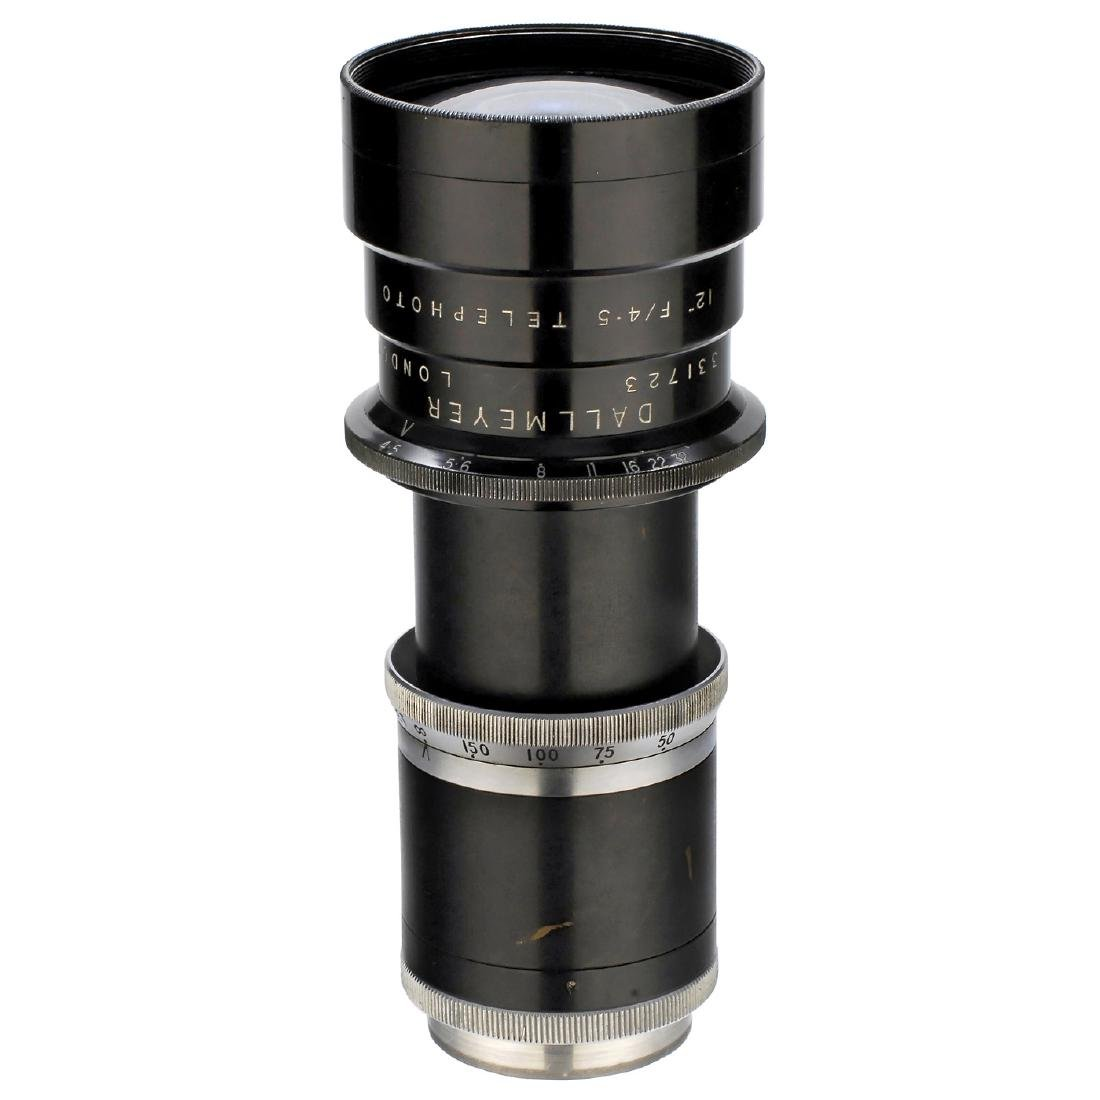 Dallmeyer Telephoto 4,5/12 in. (30 cm) for Exakta 66,